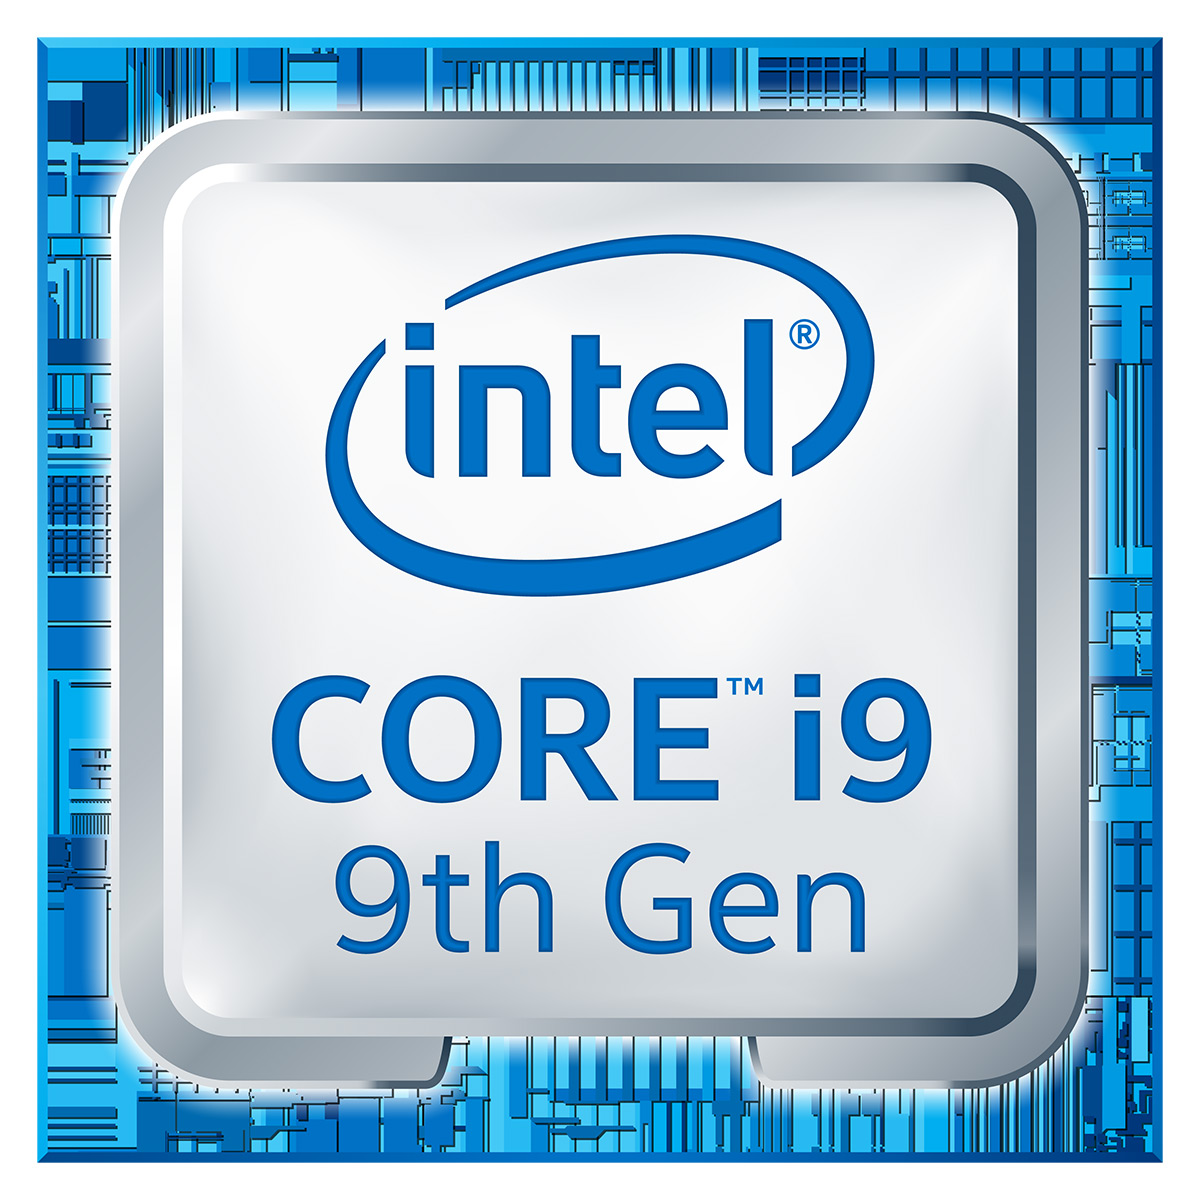 Processeur Intel Core i9-9900K (3.6 GHz / 5.0 GHz) (Bulk) Processeur 8-Core Socket 1151 Cache L3 16 Mo Intel UHD Graphics 630 0.014 micron (version bulk sans ventilateur - garantie 1 an)